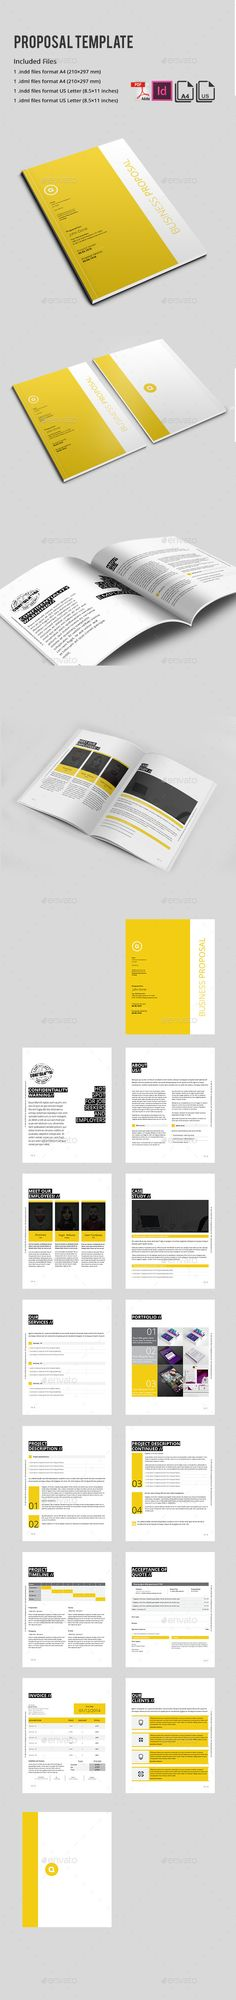 Studio Design Proposal Pinterest Proposals, Studio design and